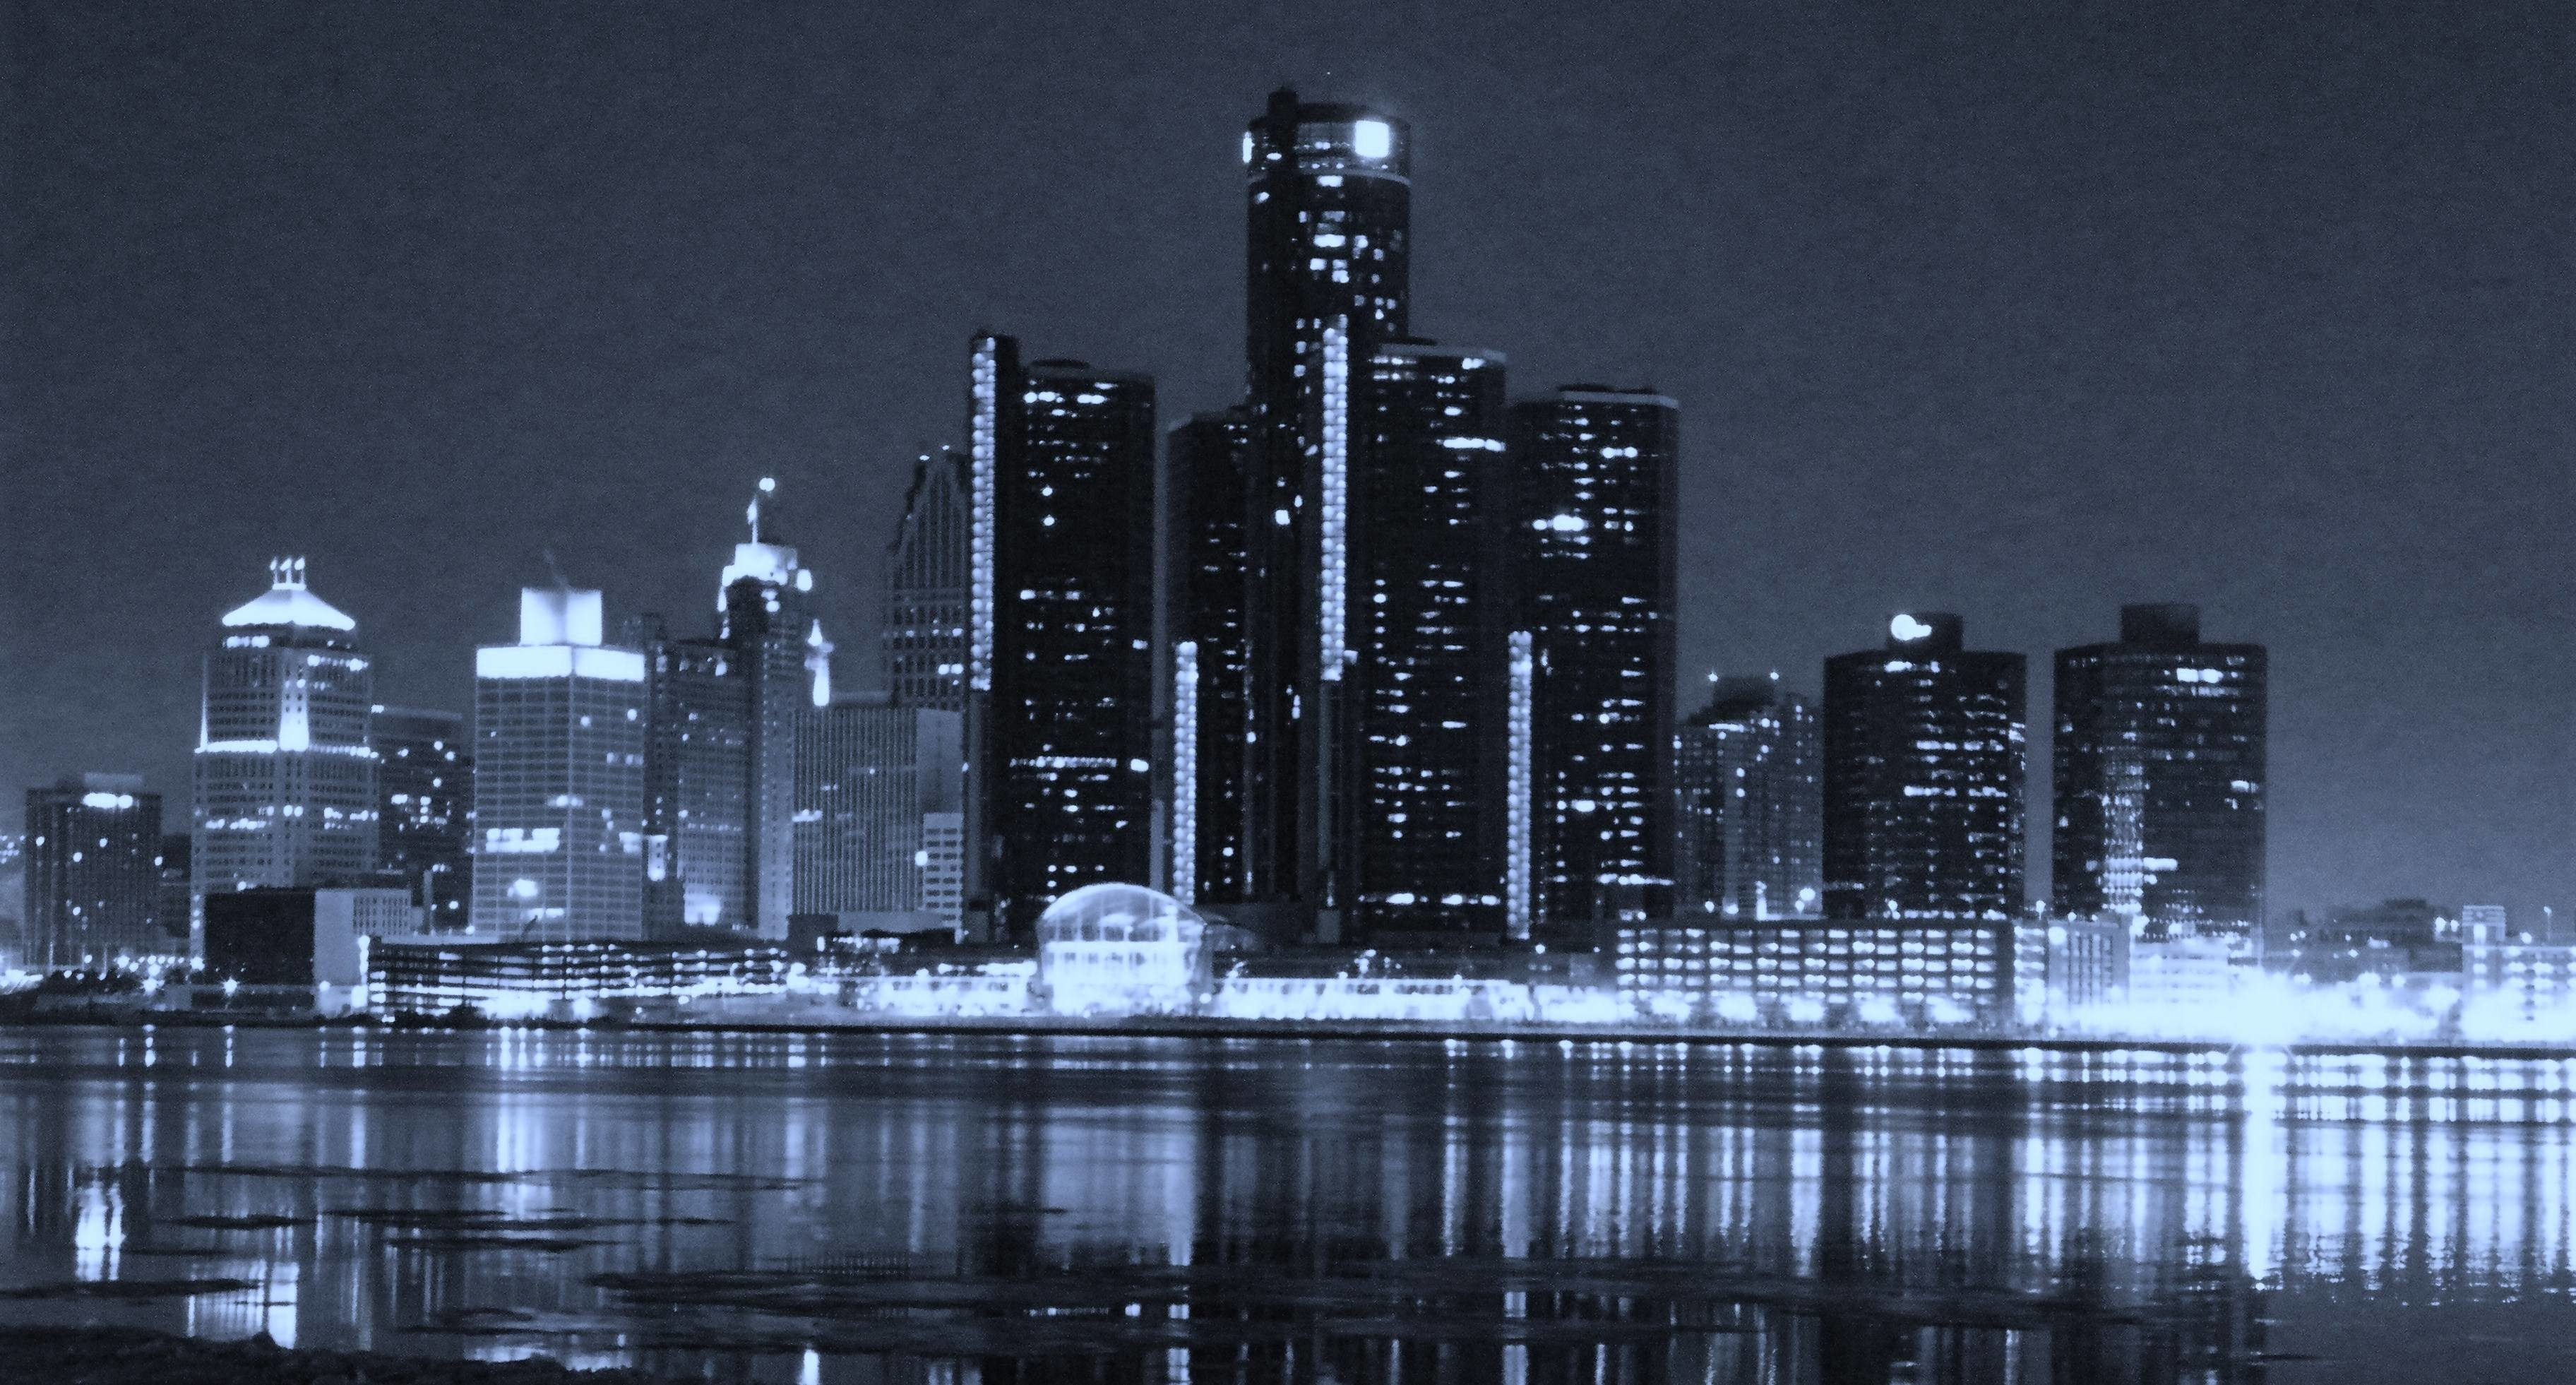 3648x1961 Detroit Skyline Wallpaper Black And White #13650 | Hdwidescreens.